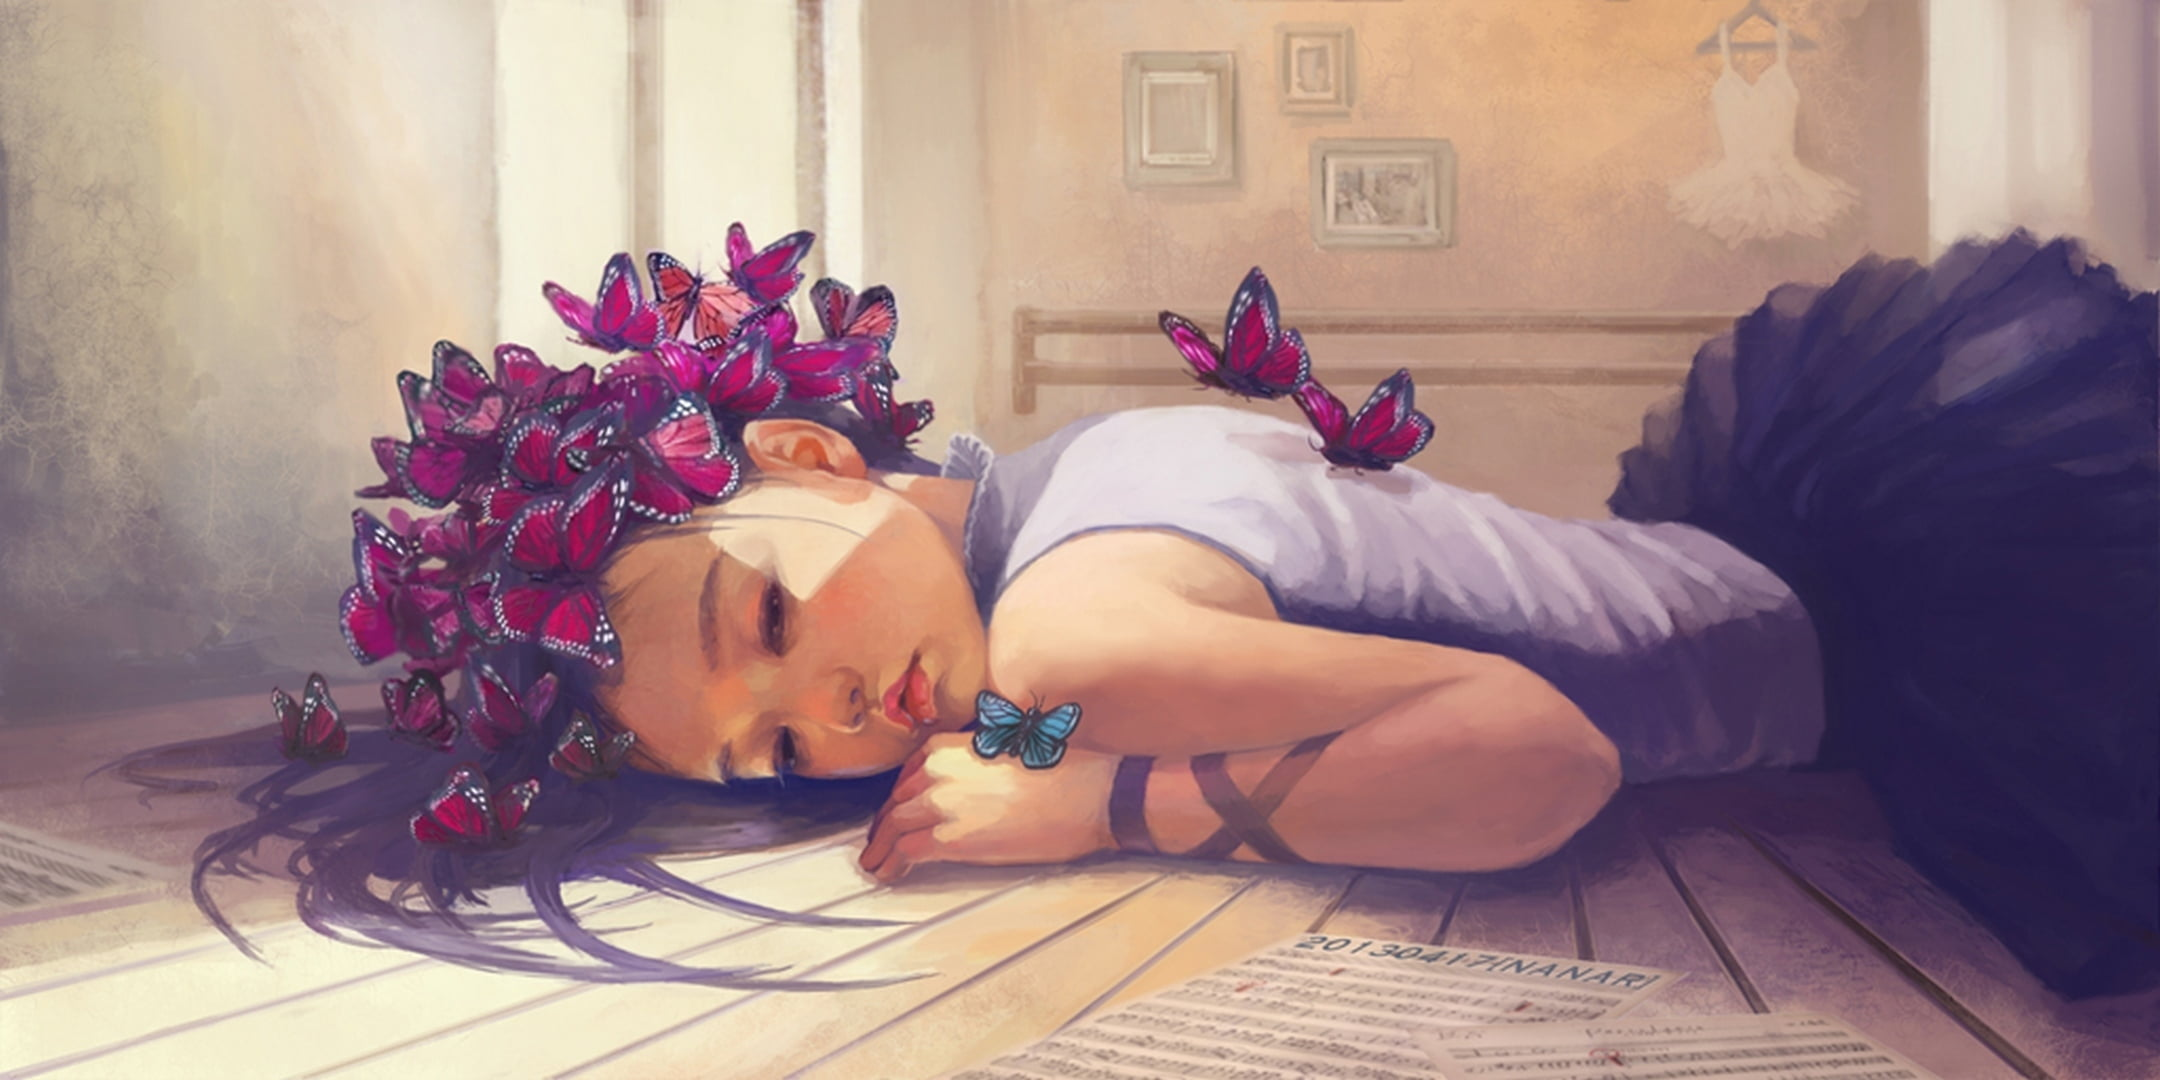 Girl Lying On Floor Painting, Butterfly, Notes, Dress, - Little Girl And Butterflies , HD Wallpaper & Backgrounds